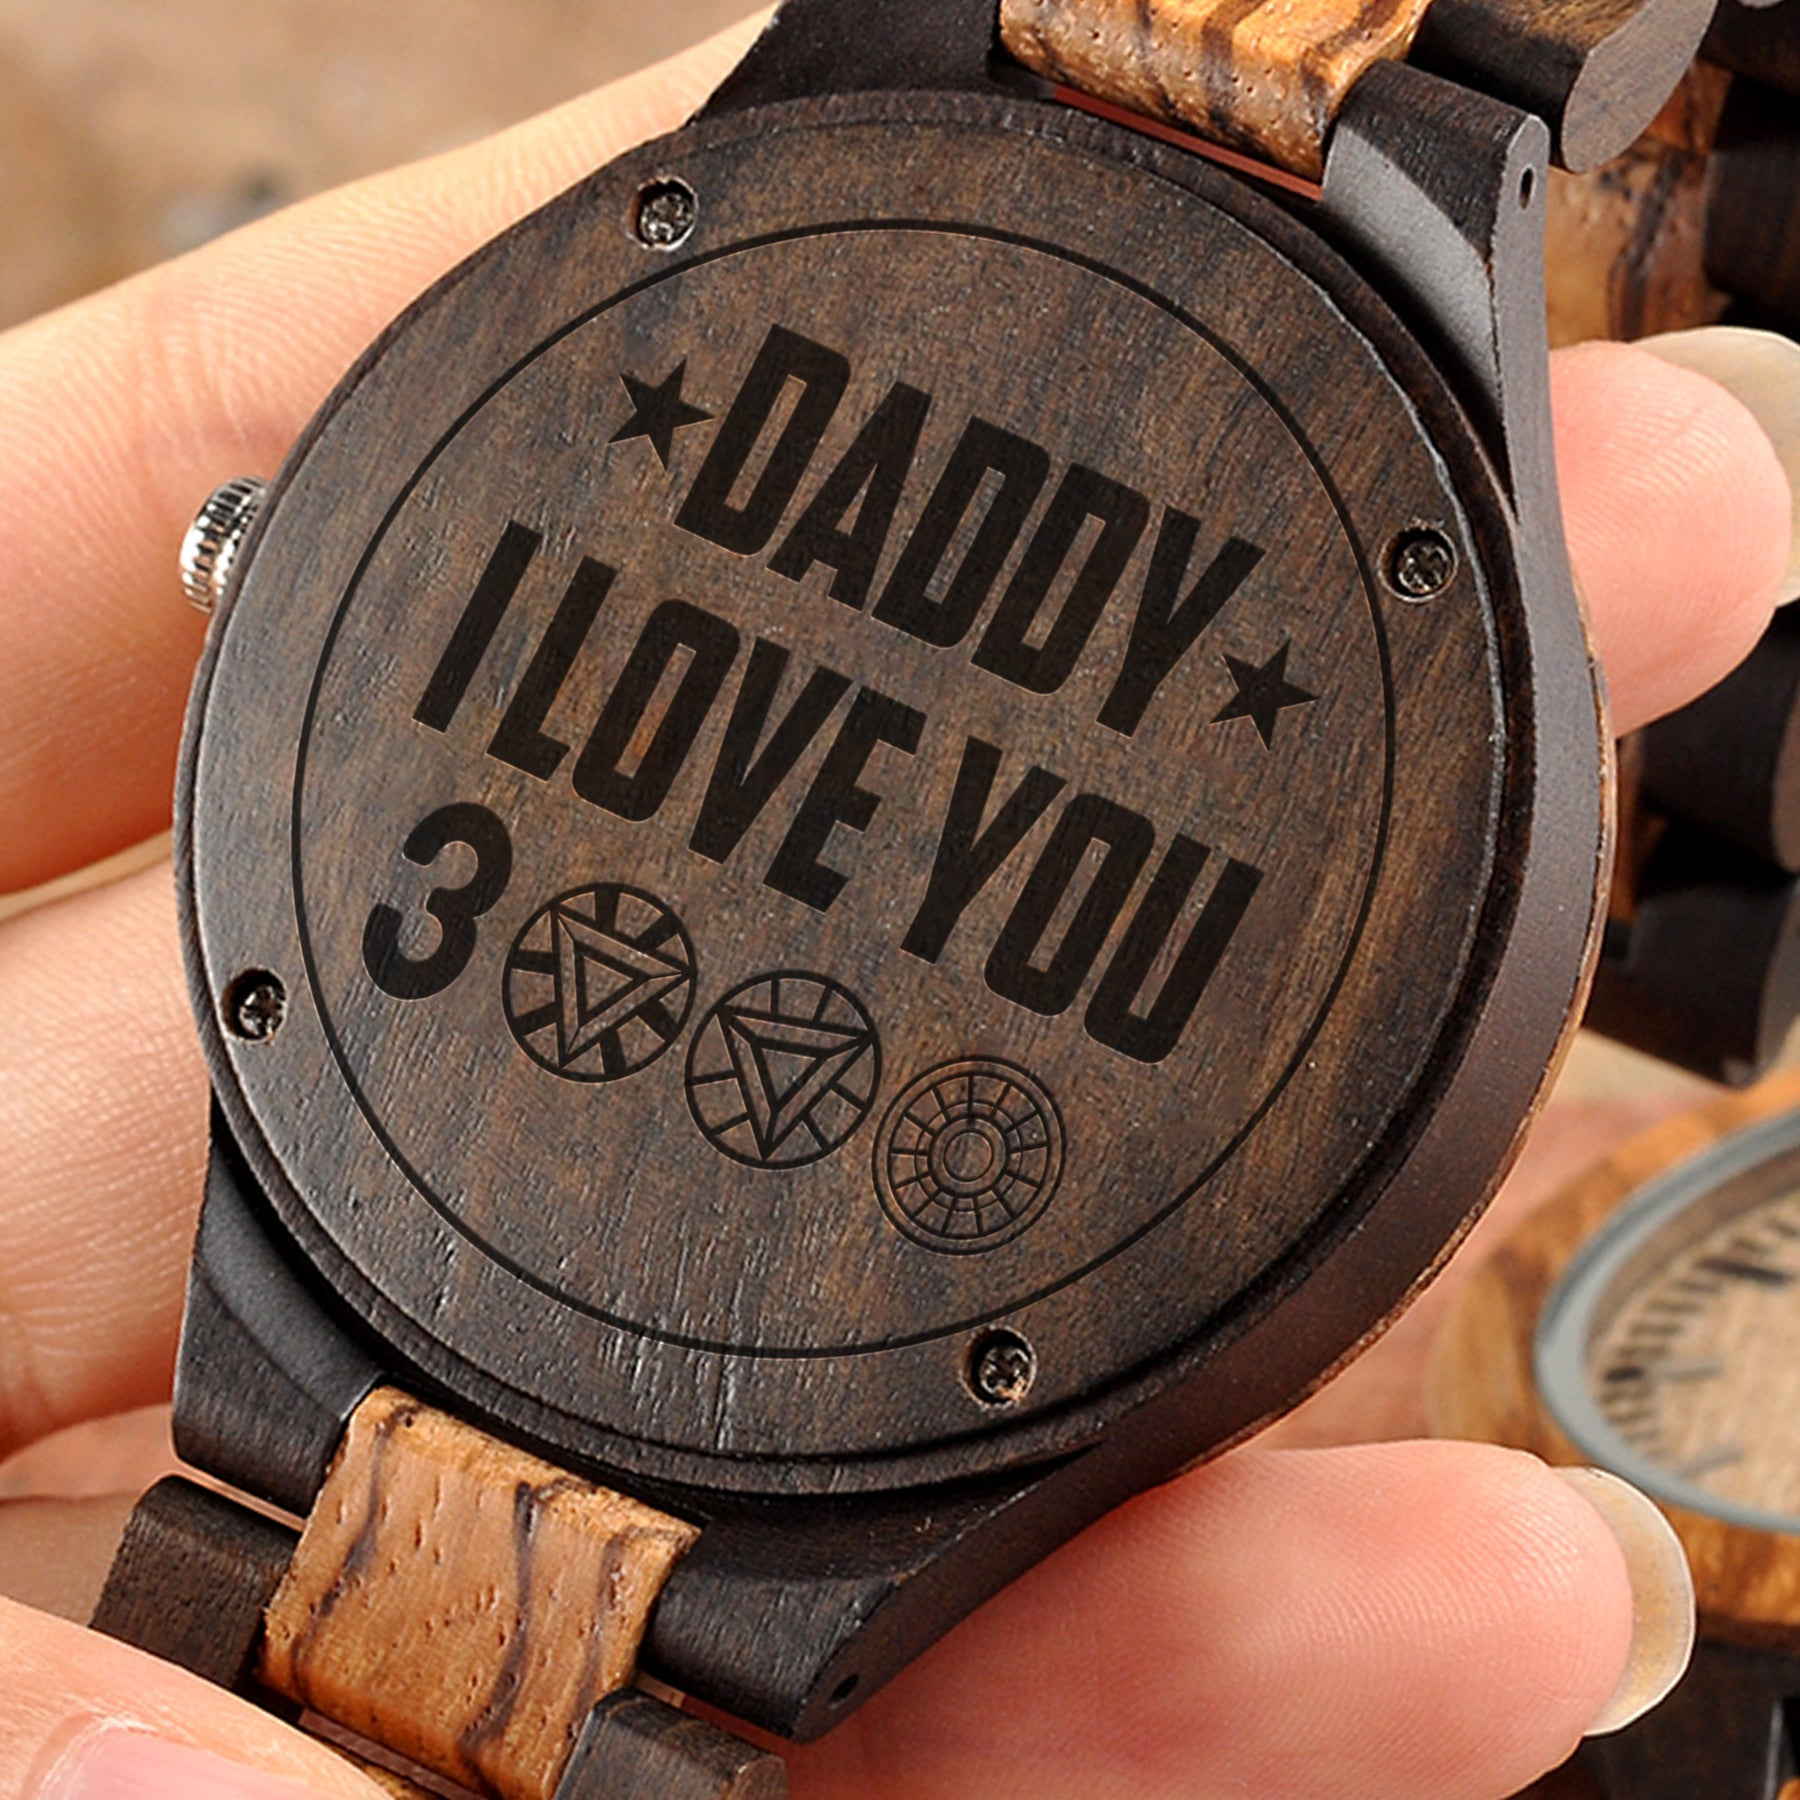 Daddy I Love You 3000 - Wooden Watch